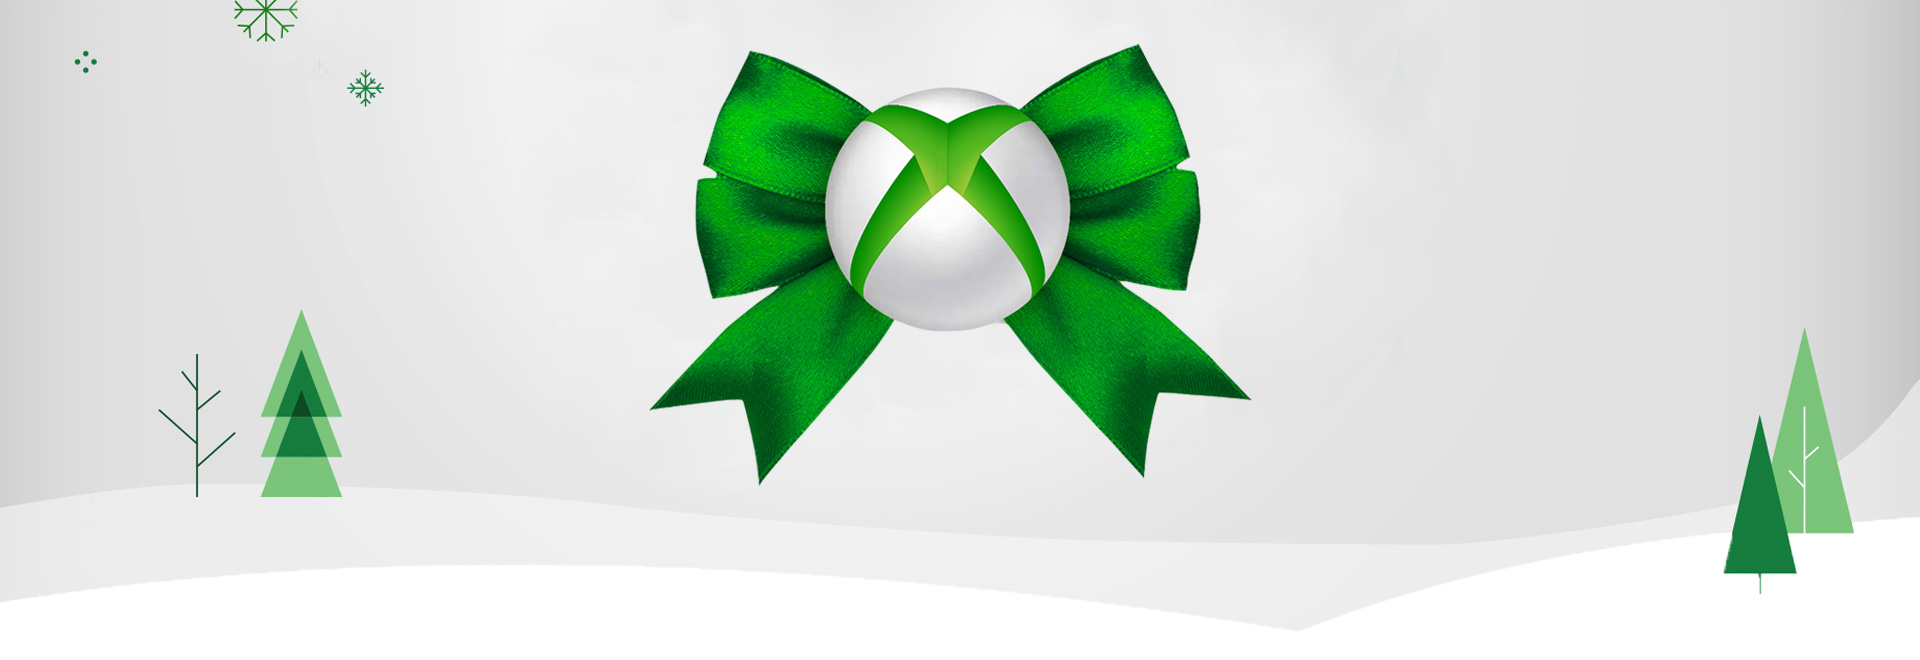 An image of a gift-wrapped Xbox logo